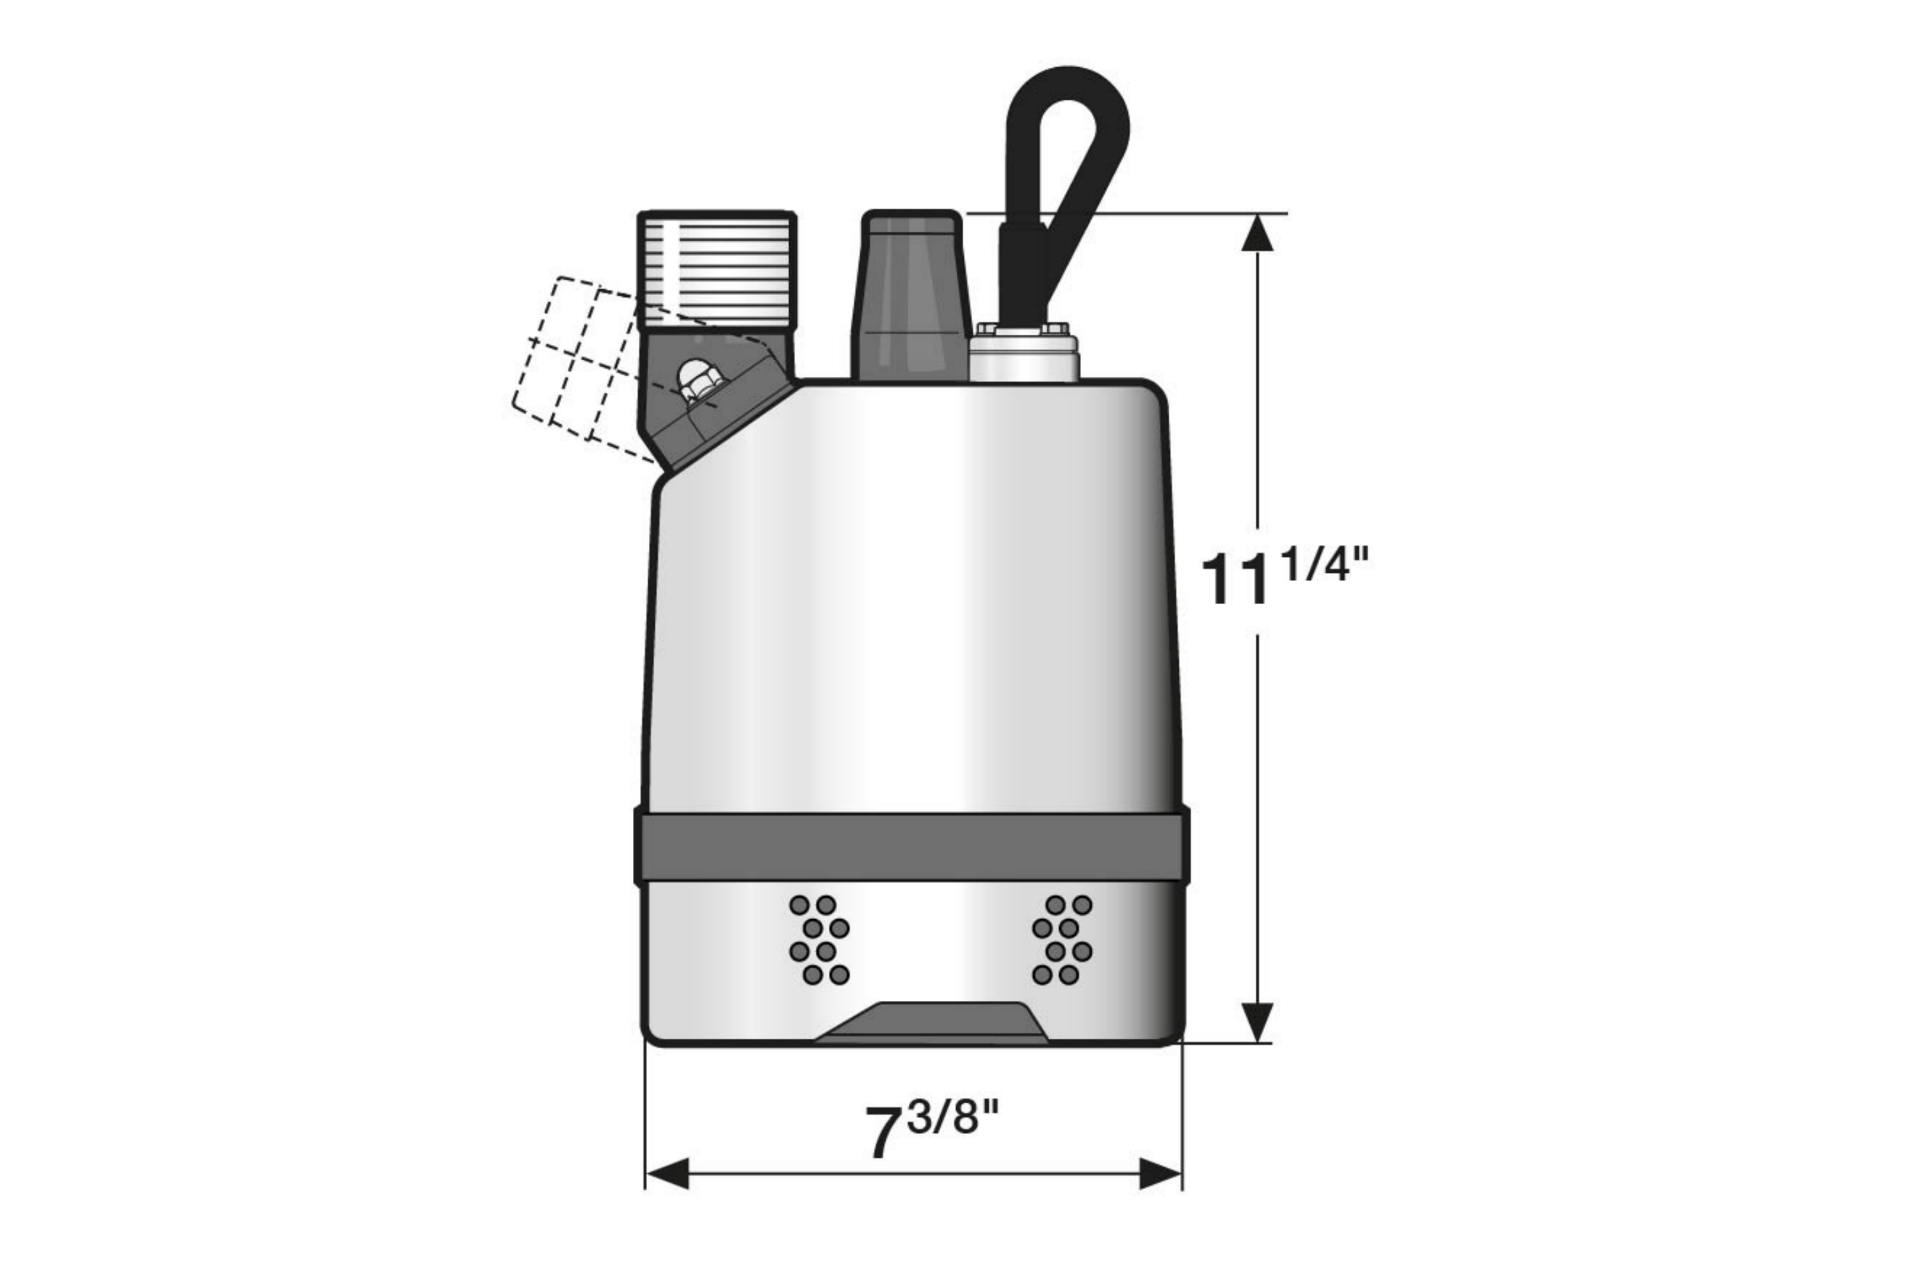 Dimension drawing of submersible drainage center-line pump JC 6 (60Hz US)